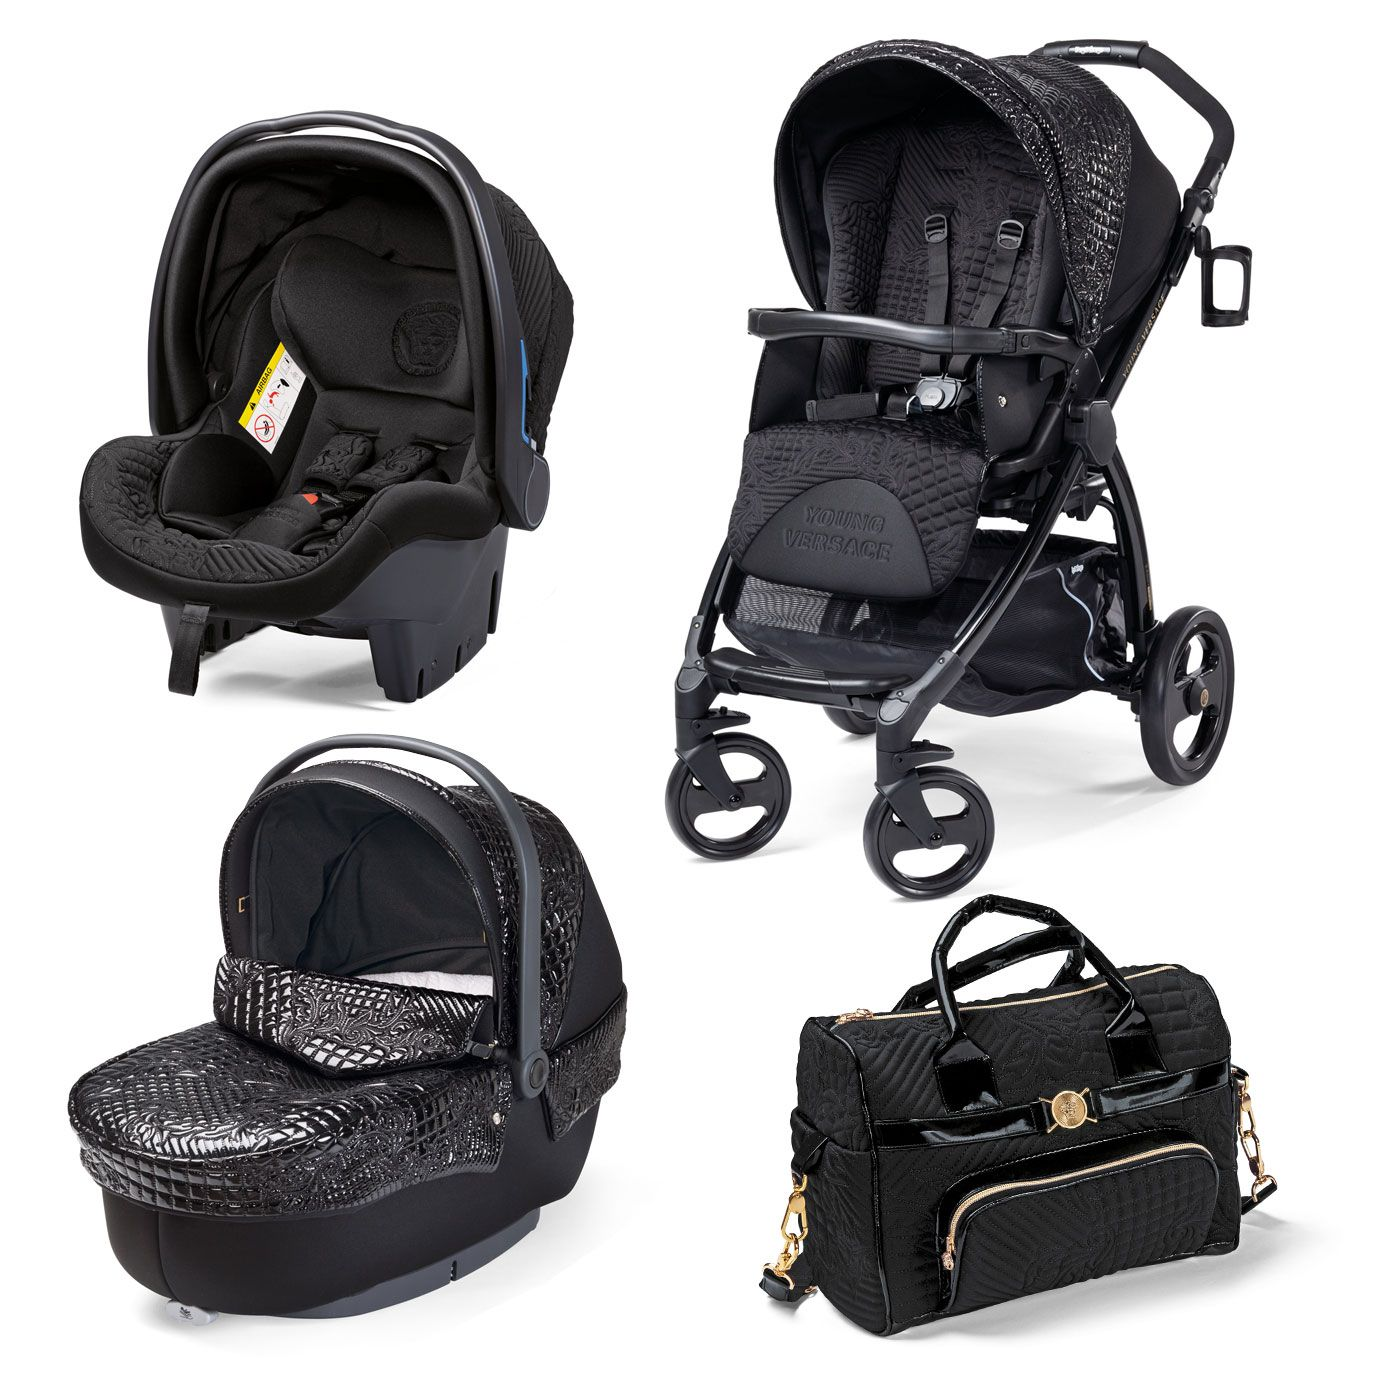 I share Young Versace Stroller Black with Pinterest from Babyshop item page